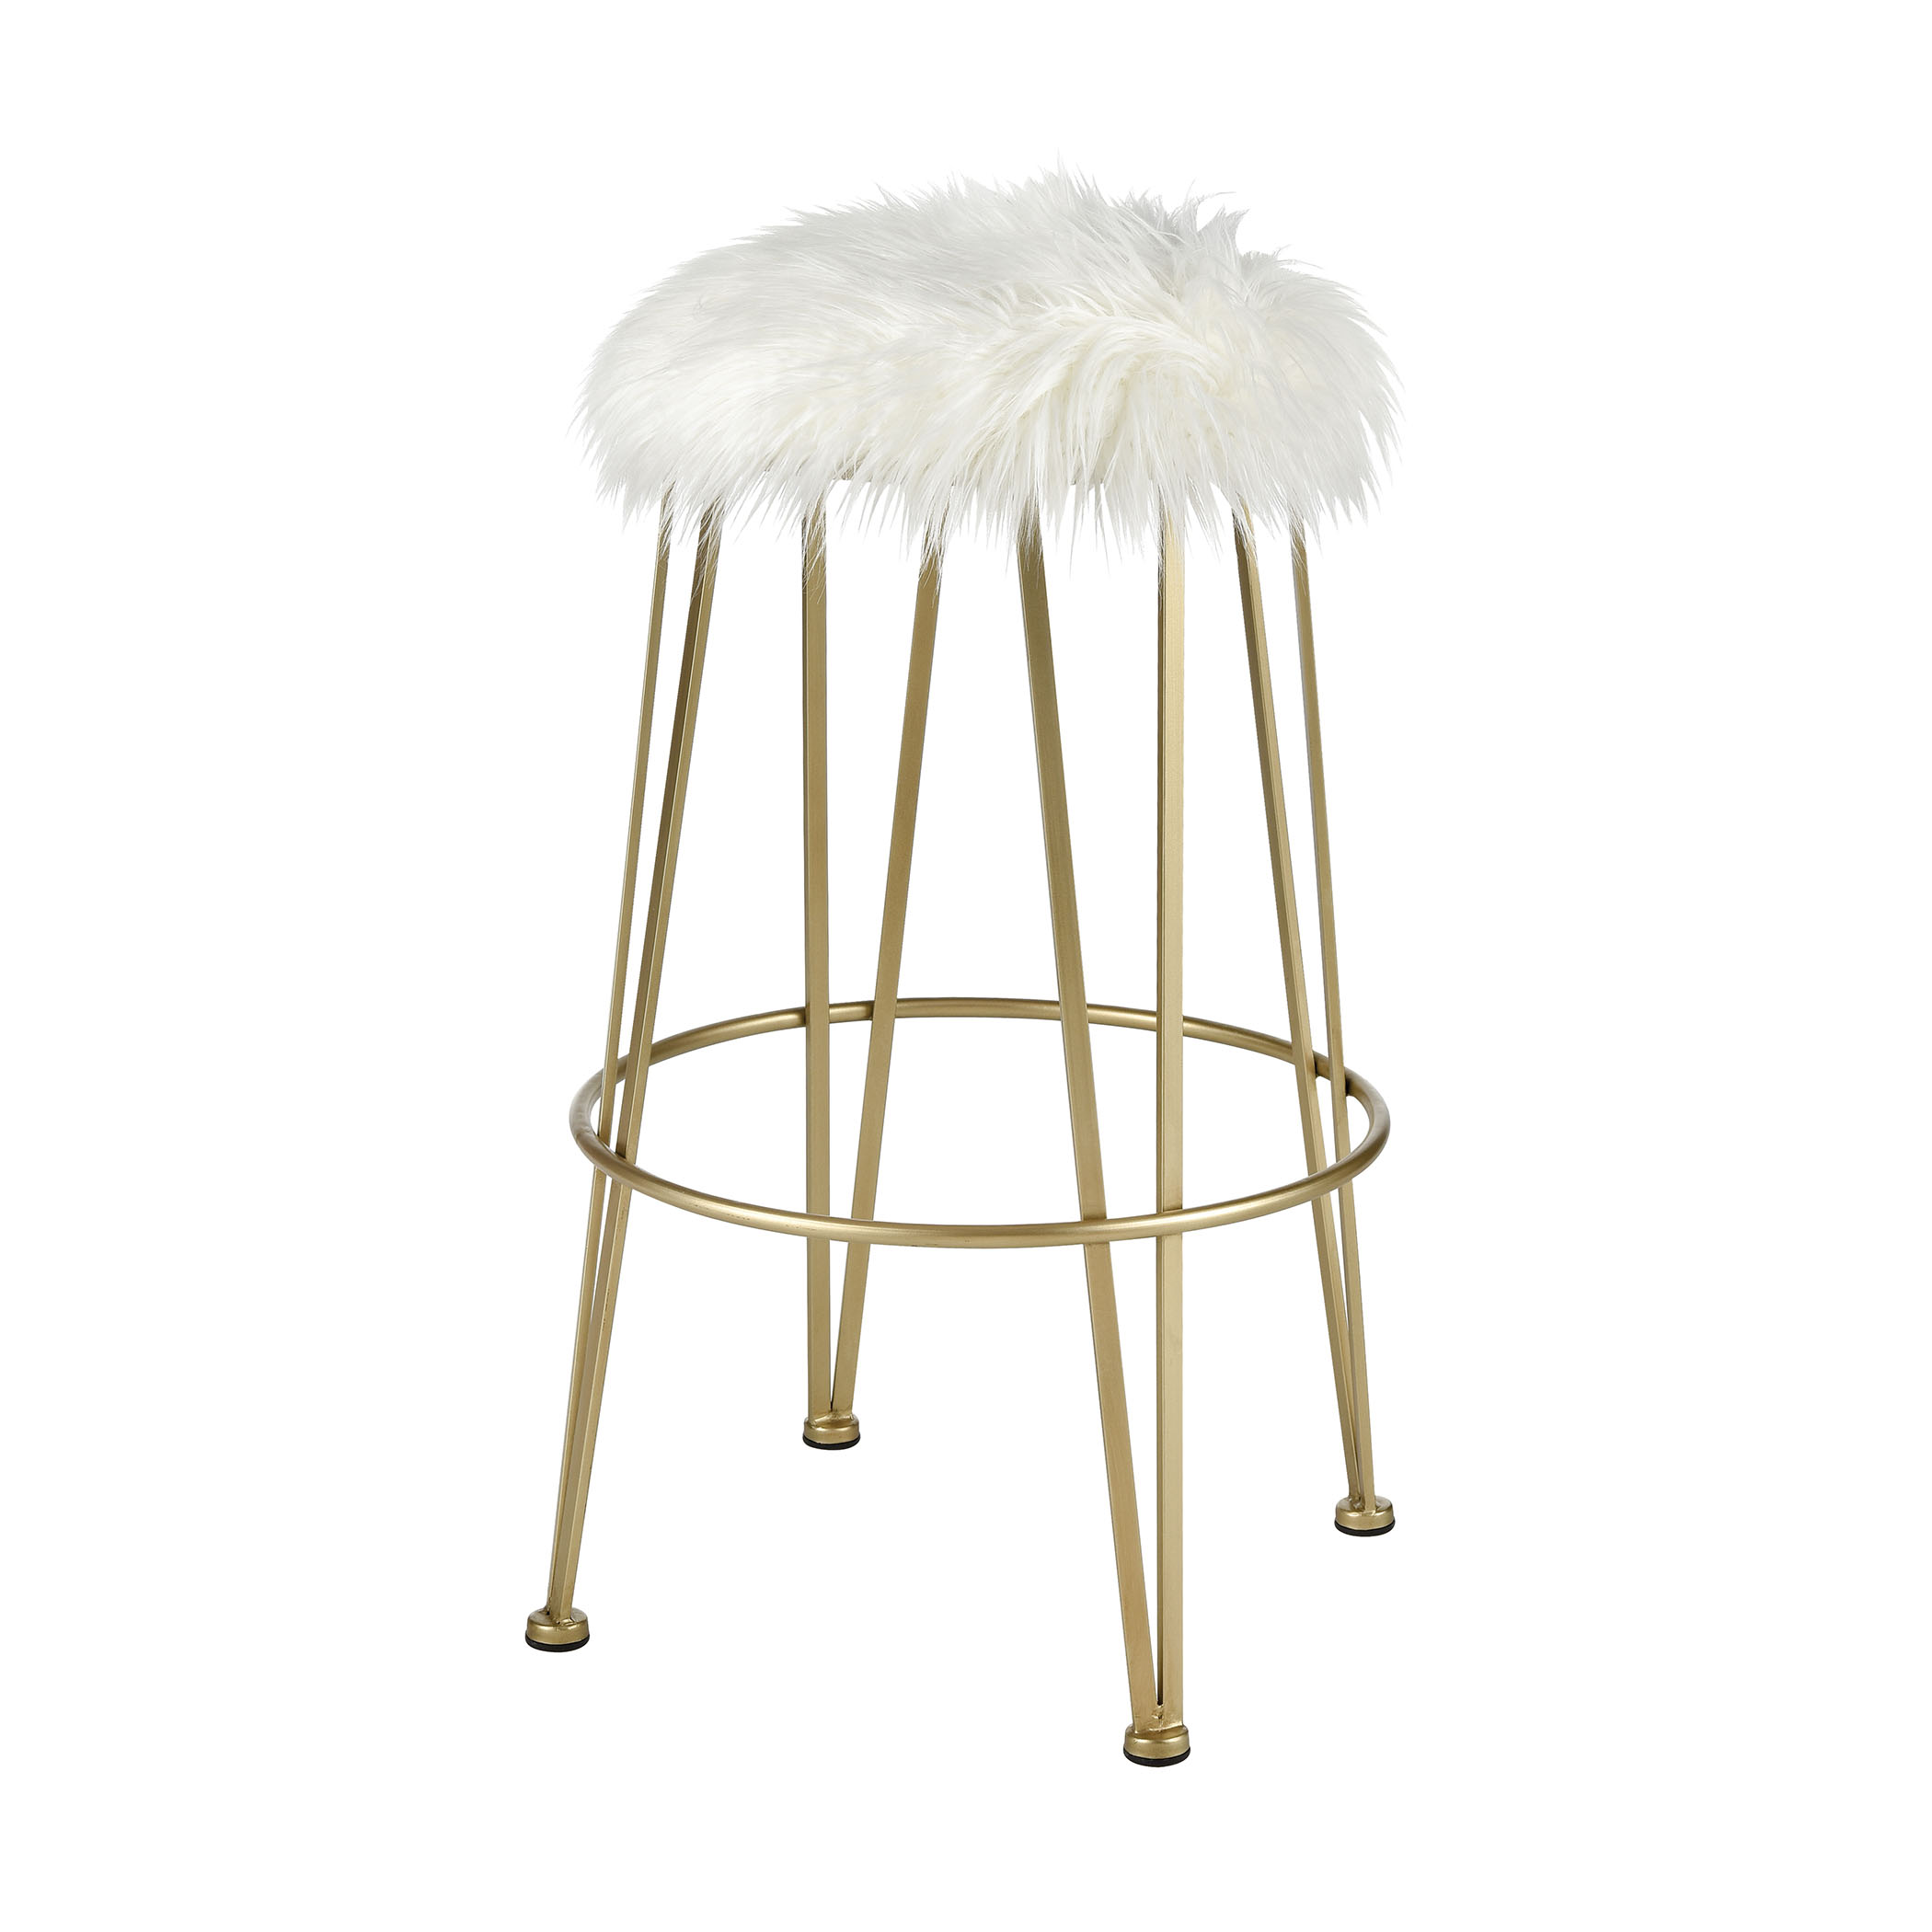 Charmed I'm Sure Bar Stool in Gold and White | Elk Home